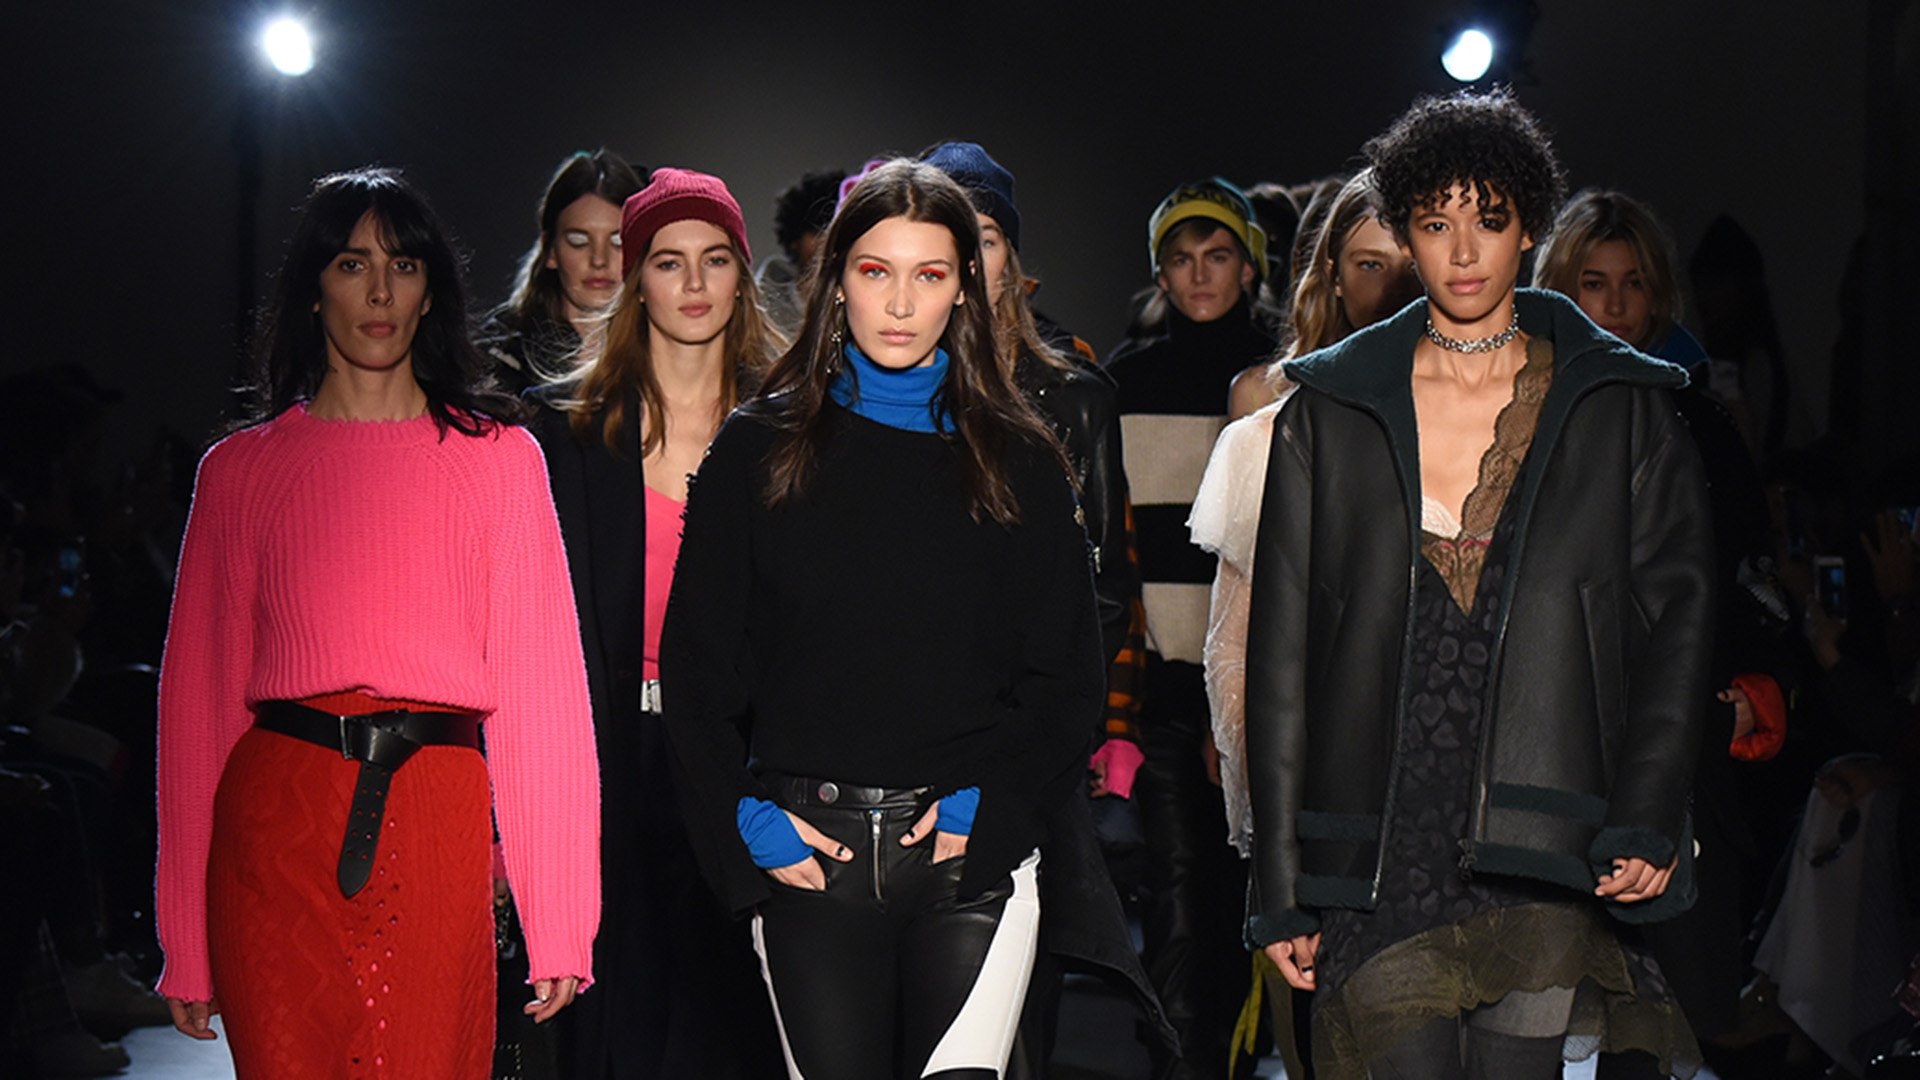 How to get the hottest runway looks for a fraction of the cost